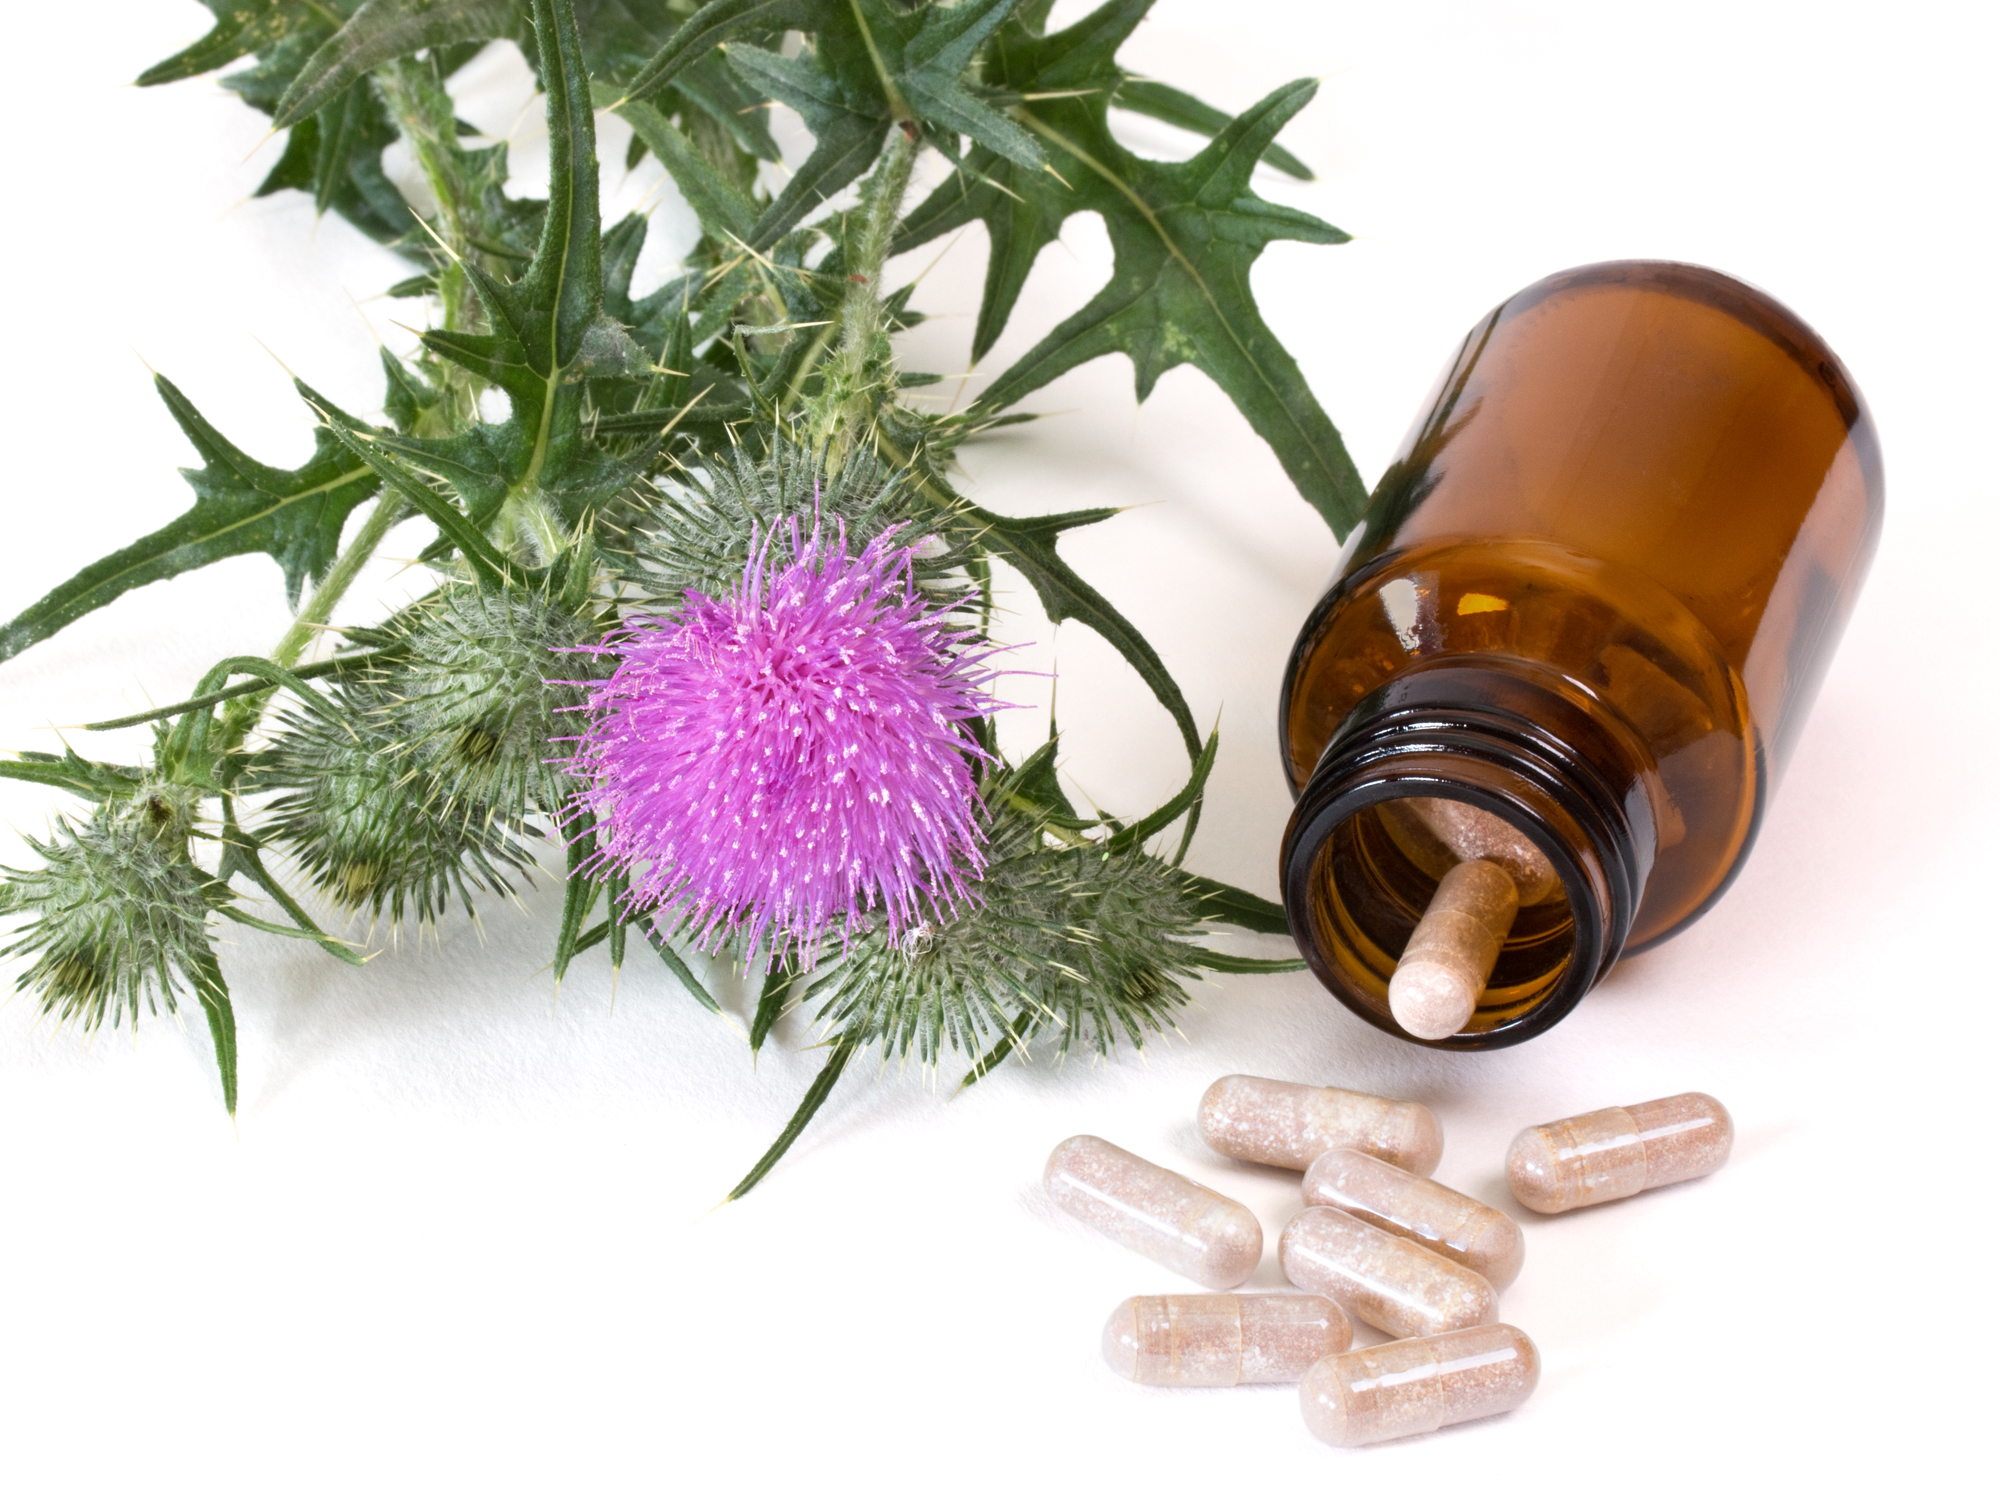 Milking the many benefits of milk thistle